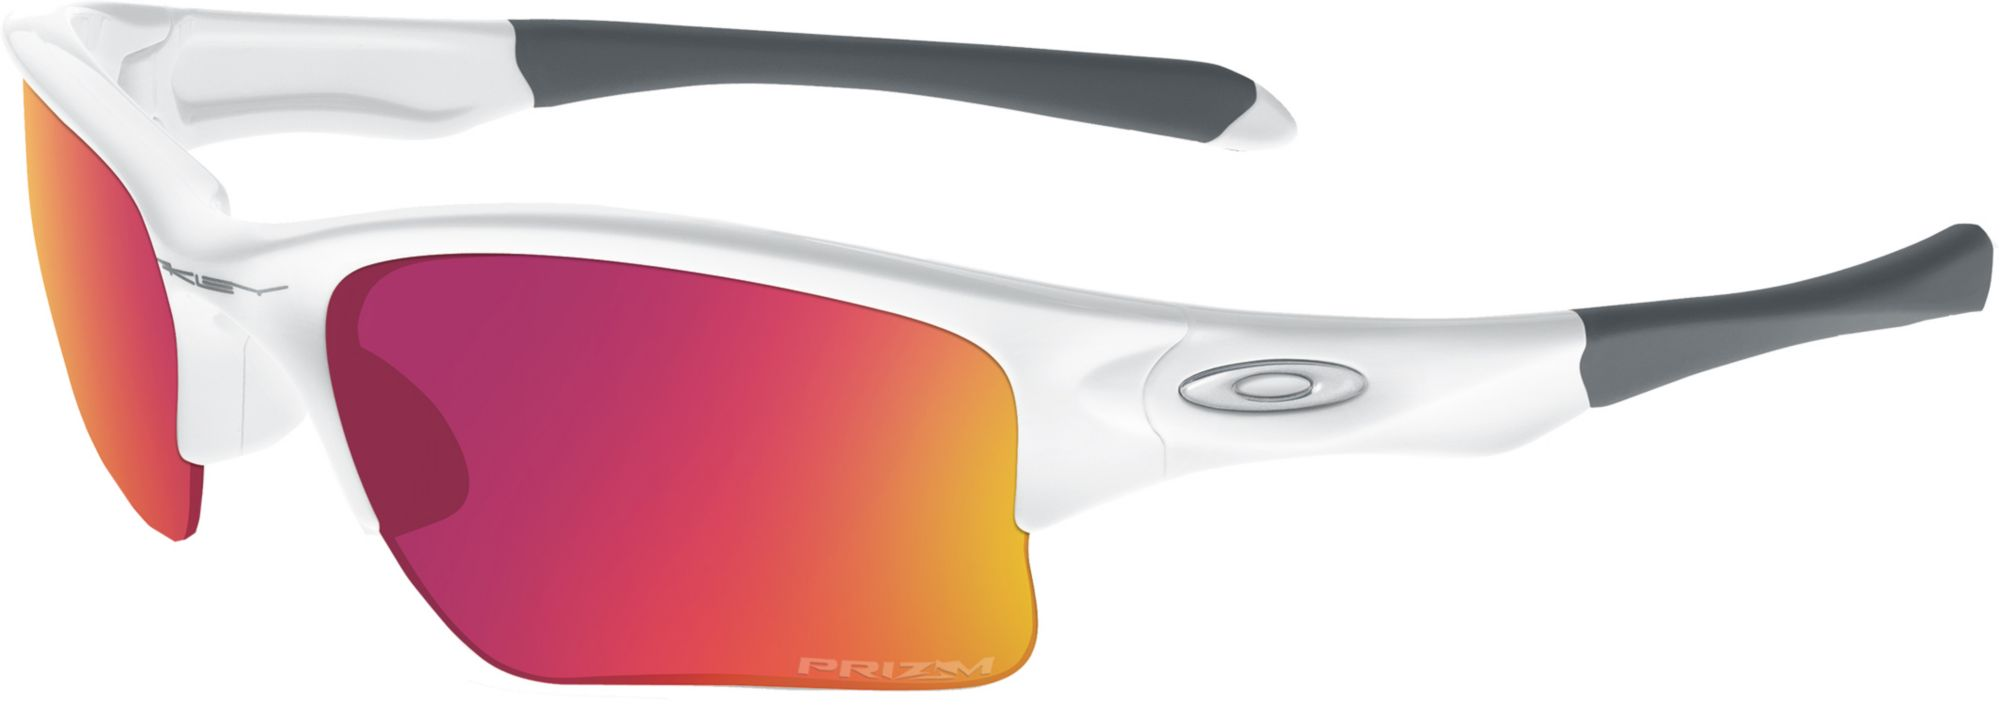 oakley prescription sunglasses coupons  product image oakley kids' prizm baseball quarter jacket sunglasses